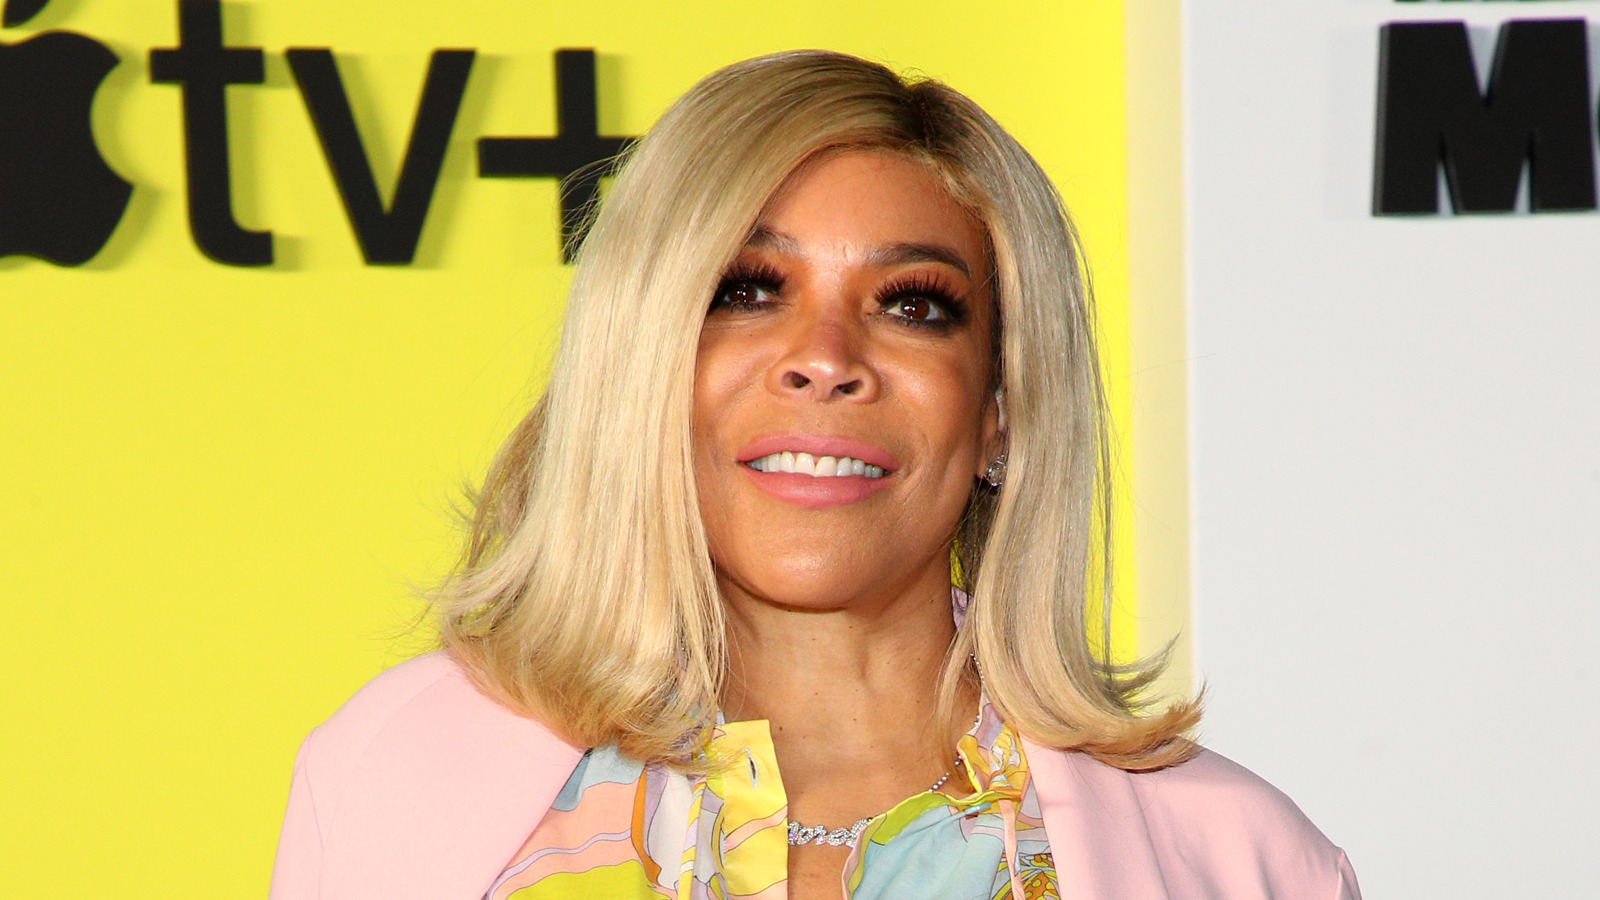 The Transformation Of Wendy Williams From 31 To 56 Years Old